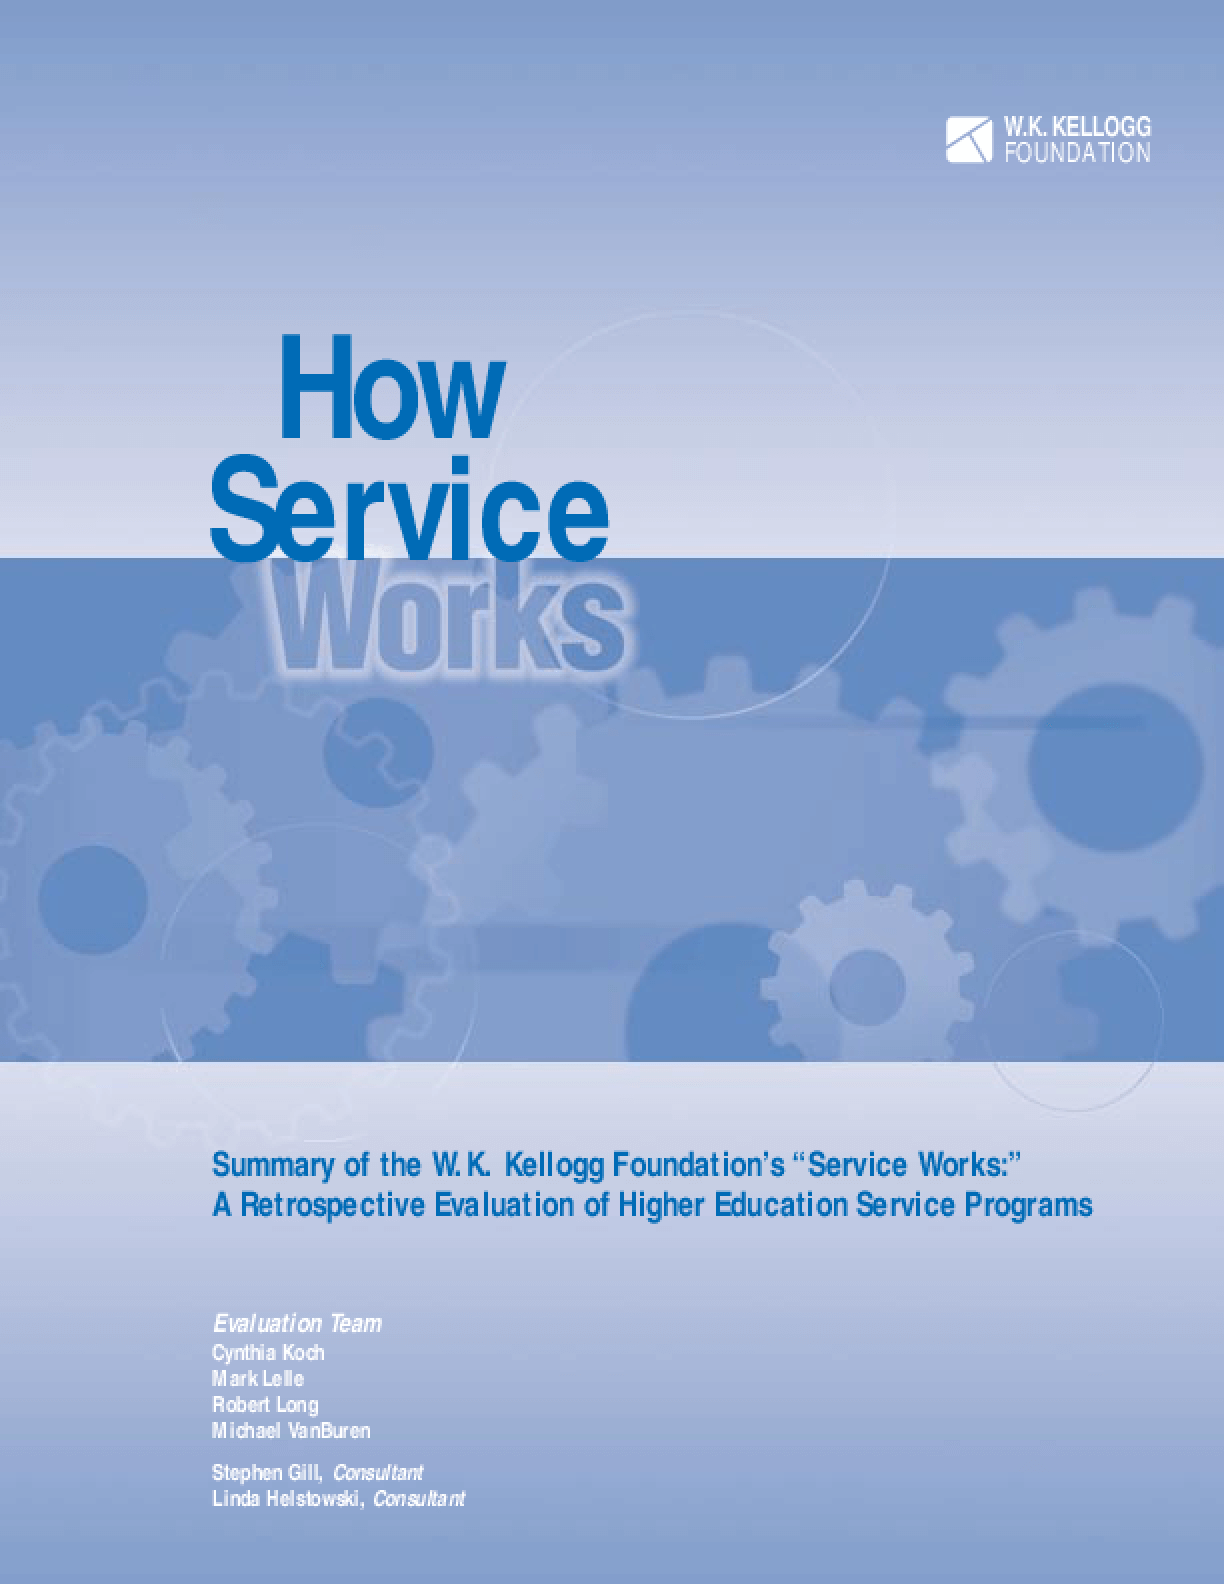 How Service Works